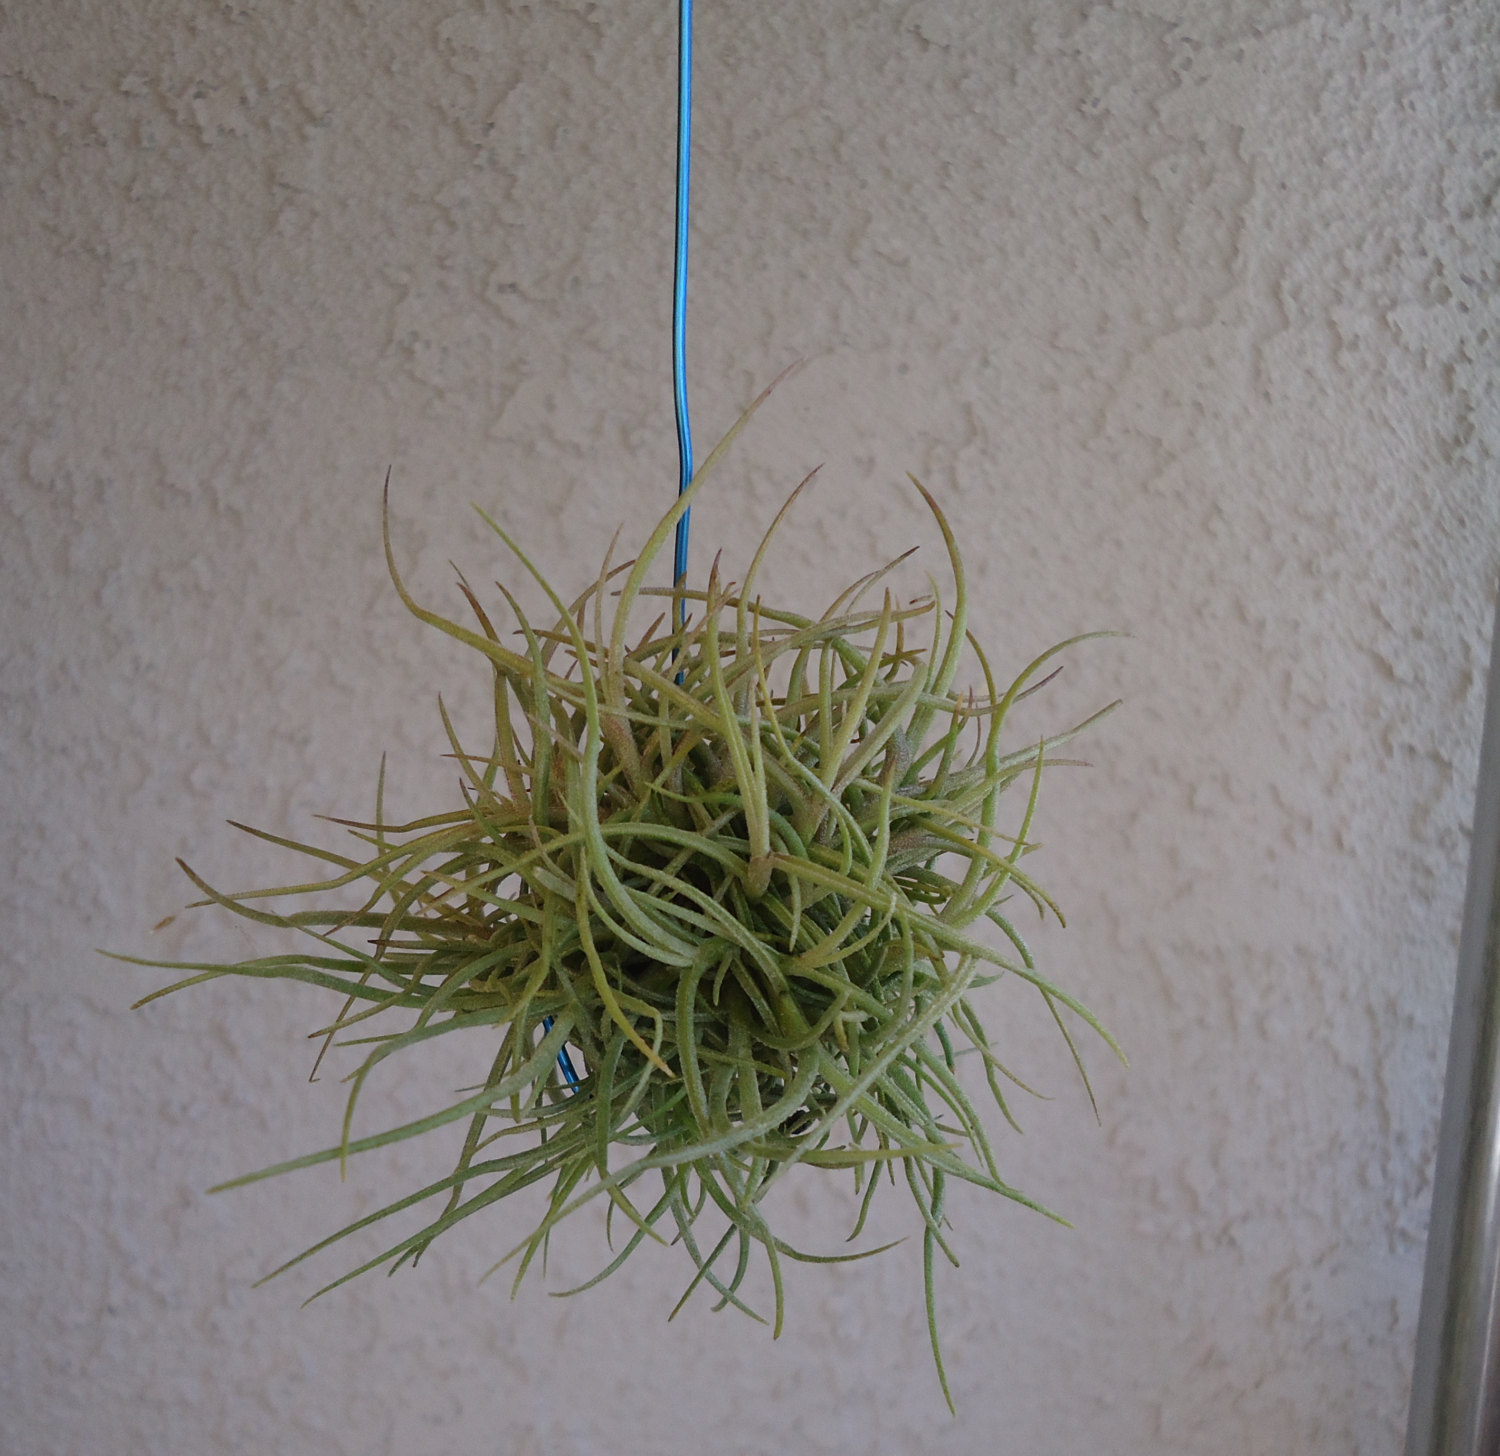 Tillandsia Recurvata Hanging Ball by CTSairplants on Etsy.